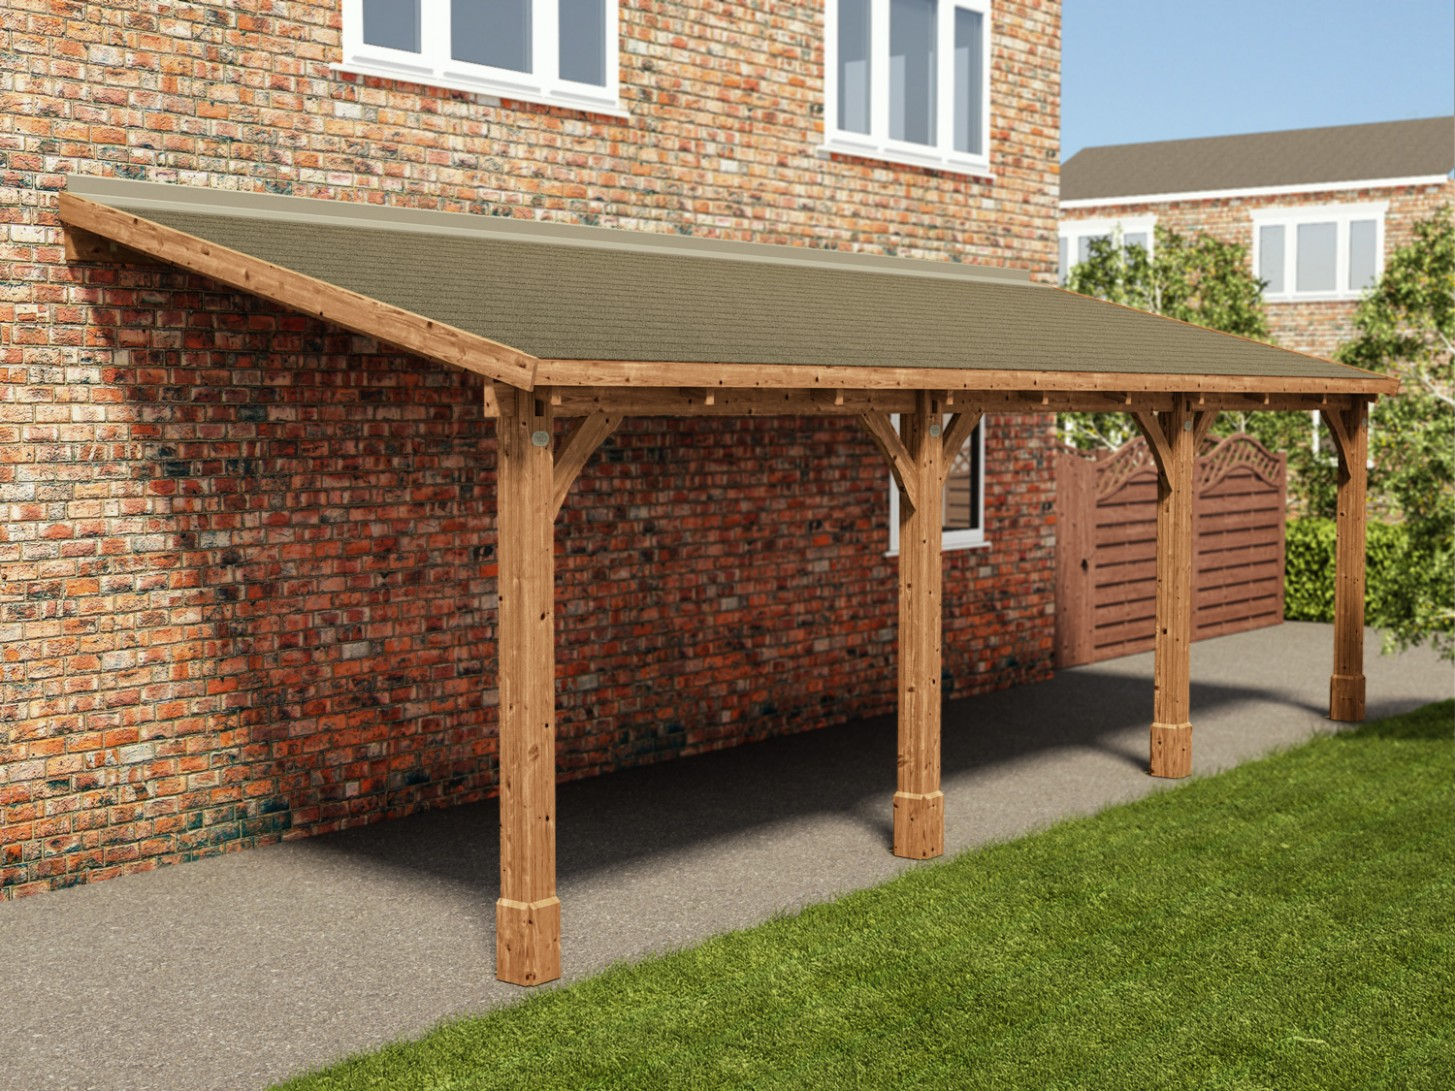 1517792059-new-product-lean-to-carports-dunster-house-blog-lean-to-carport.jpg